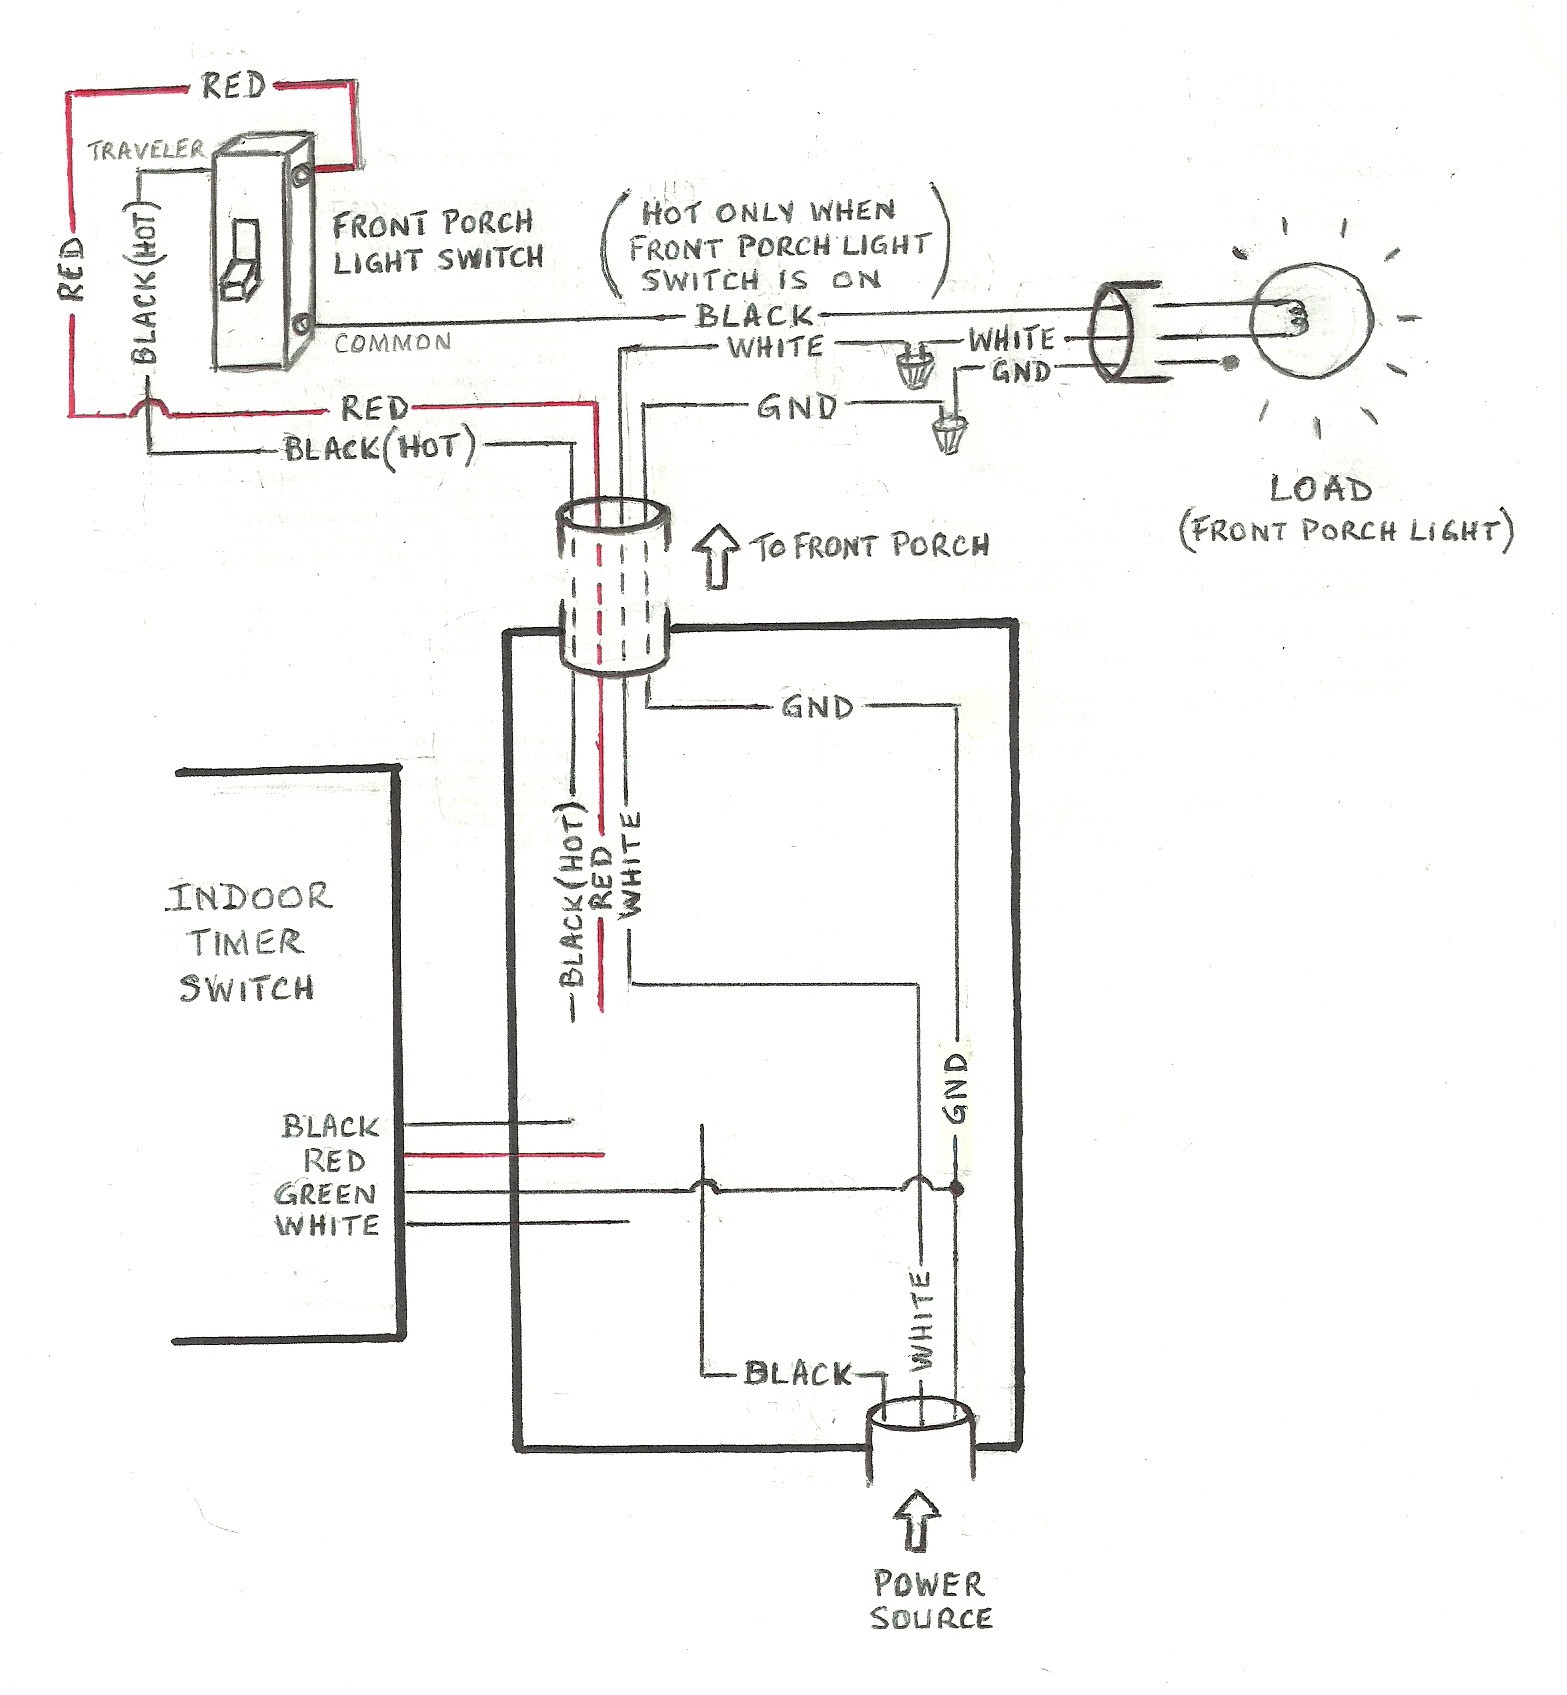 hight resolution of puch moped wiring diagram trusted wiring diagram lambretta scooter wiring diagram 100 kinetic moped wiring diagram